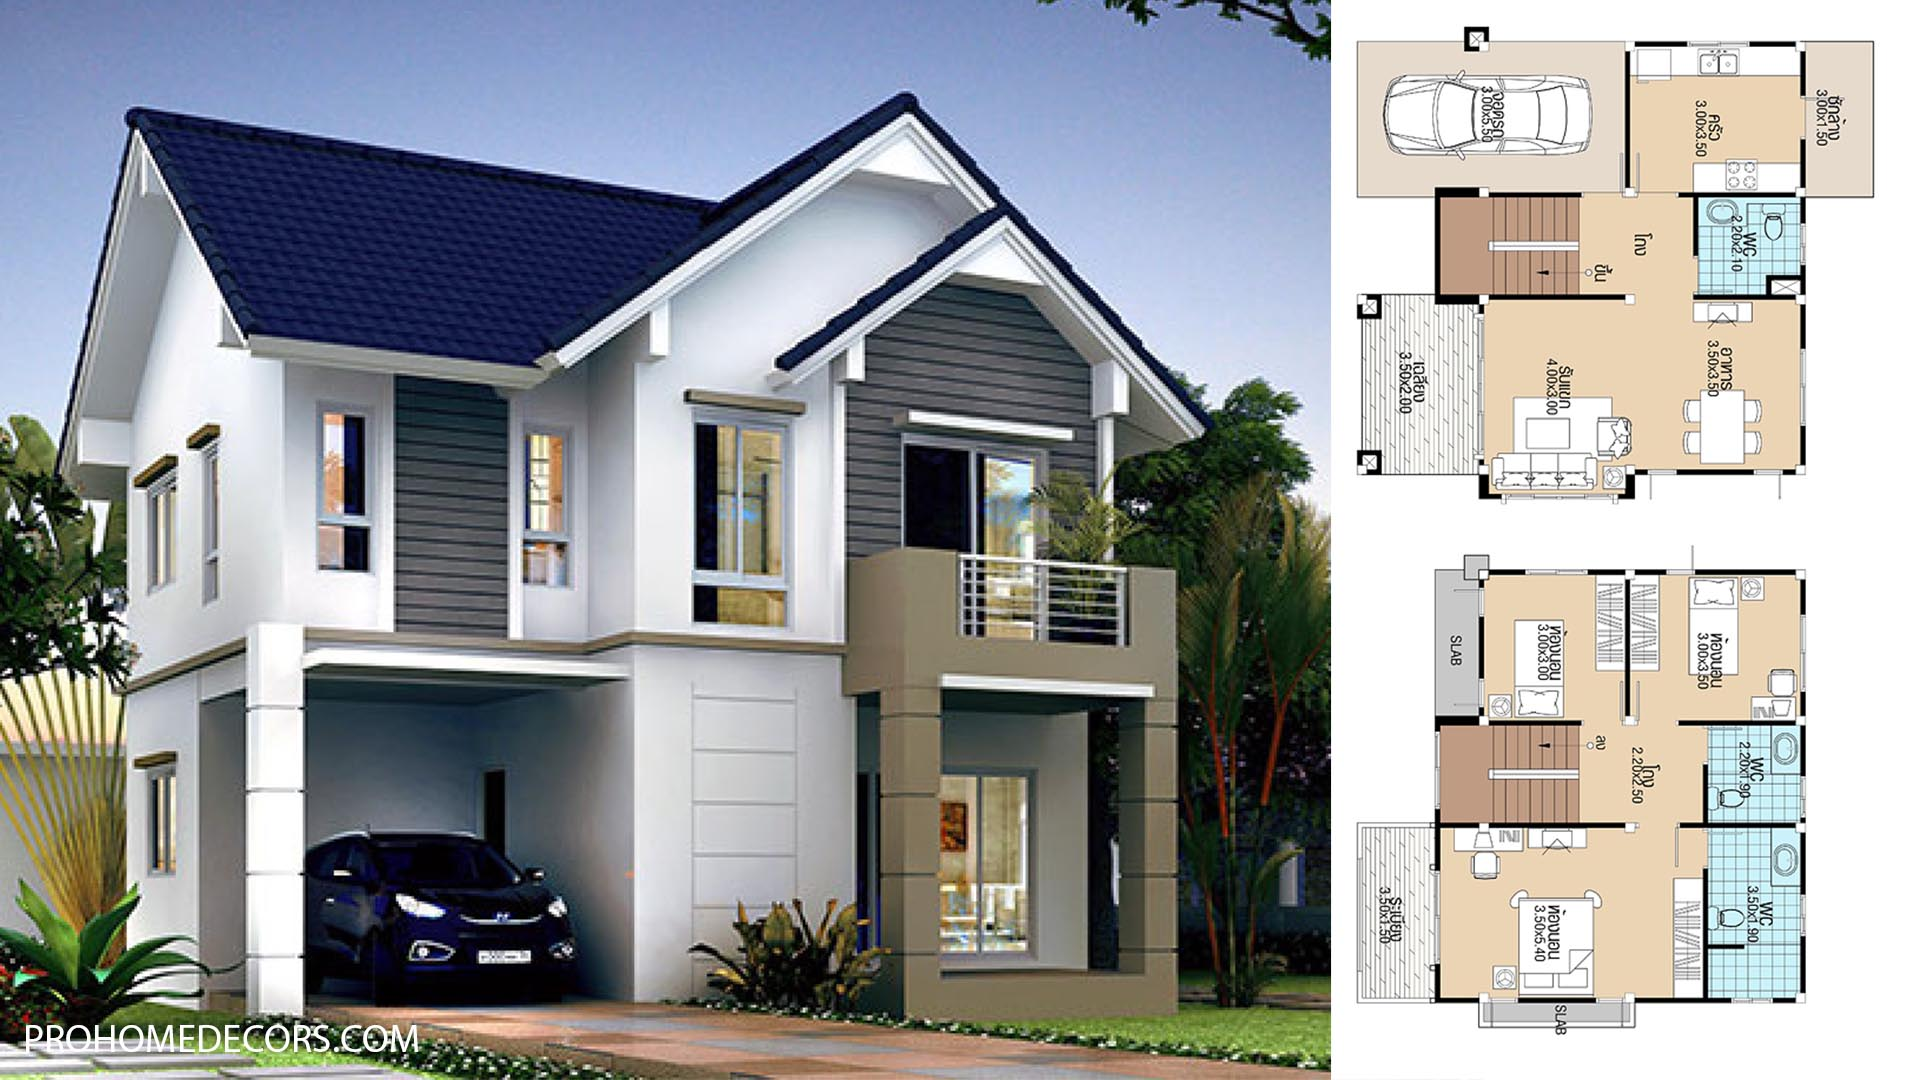 House Plans 9.2×8.5 with 3 Bedrooms